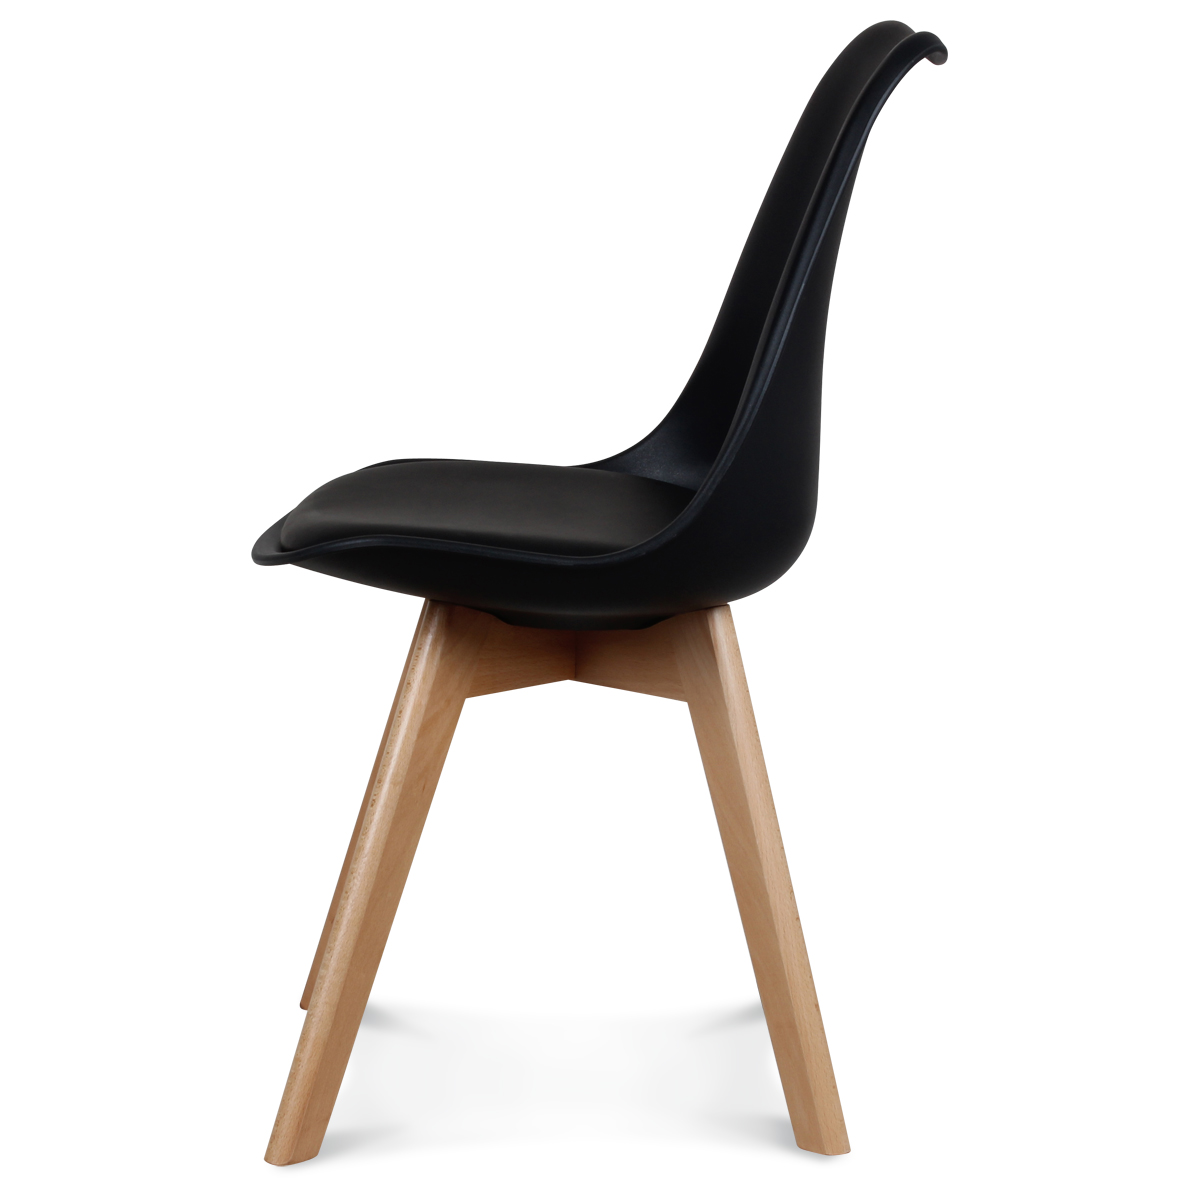 Chaise Style Scandinave Noire TOUNDRA